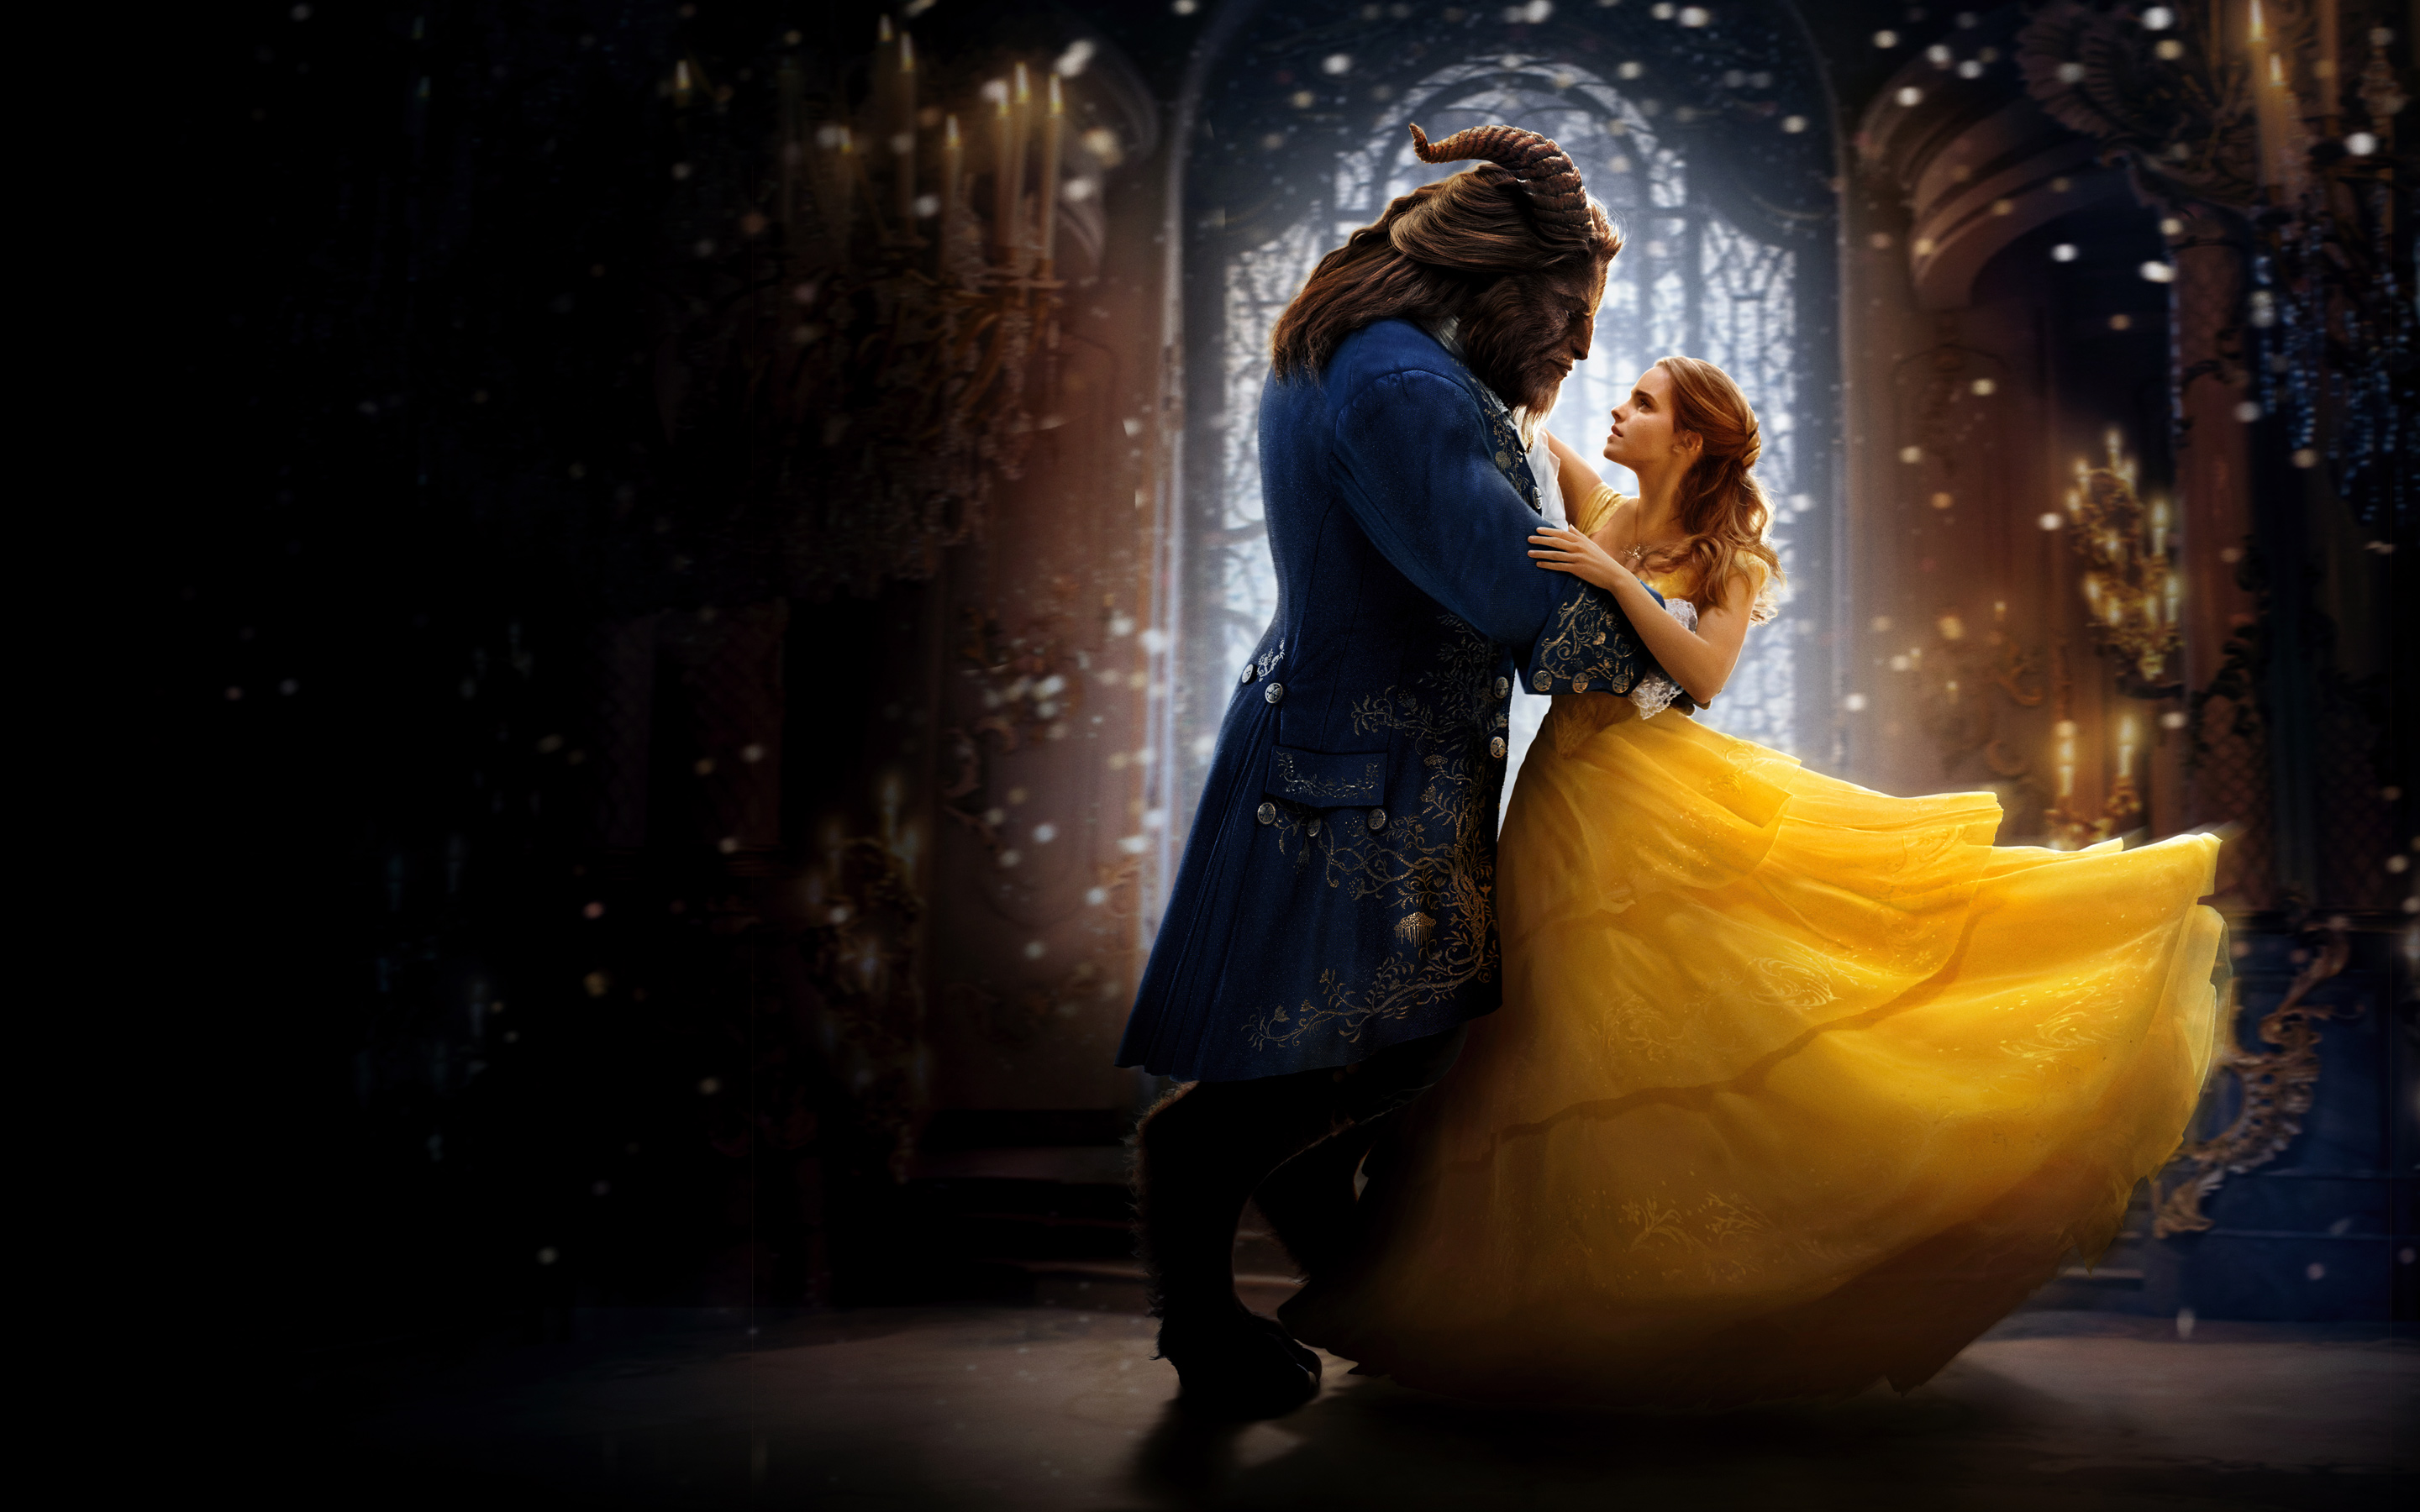 Beauty And The Beast 2017 Movie Wallpaper